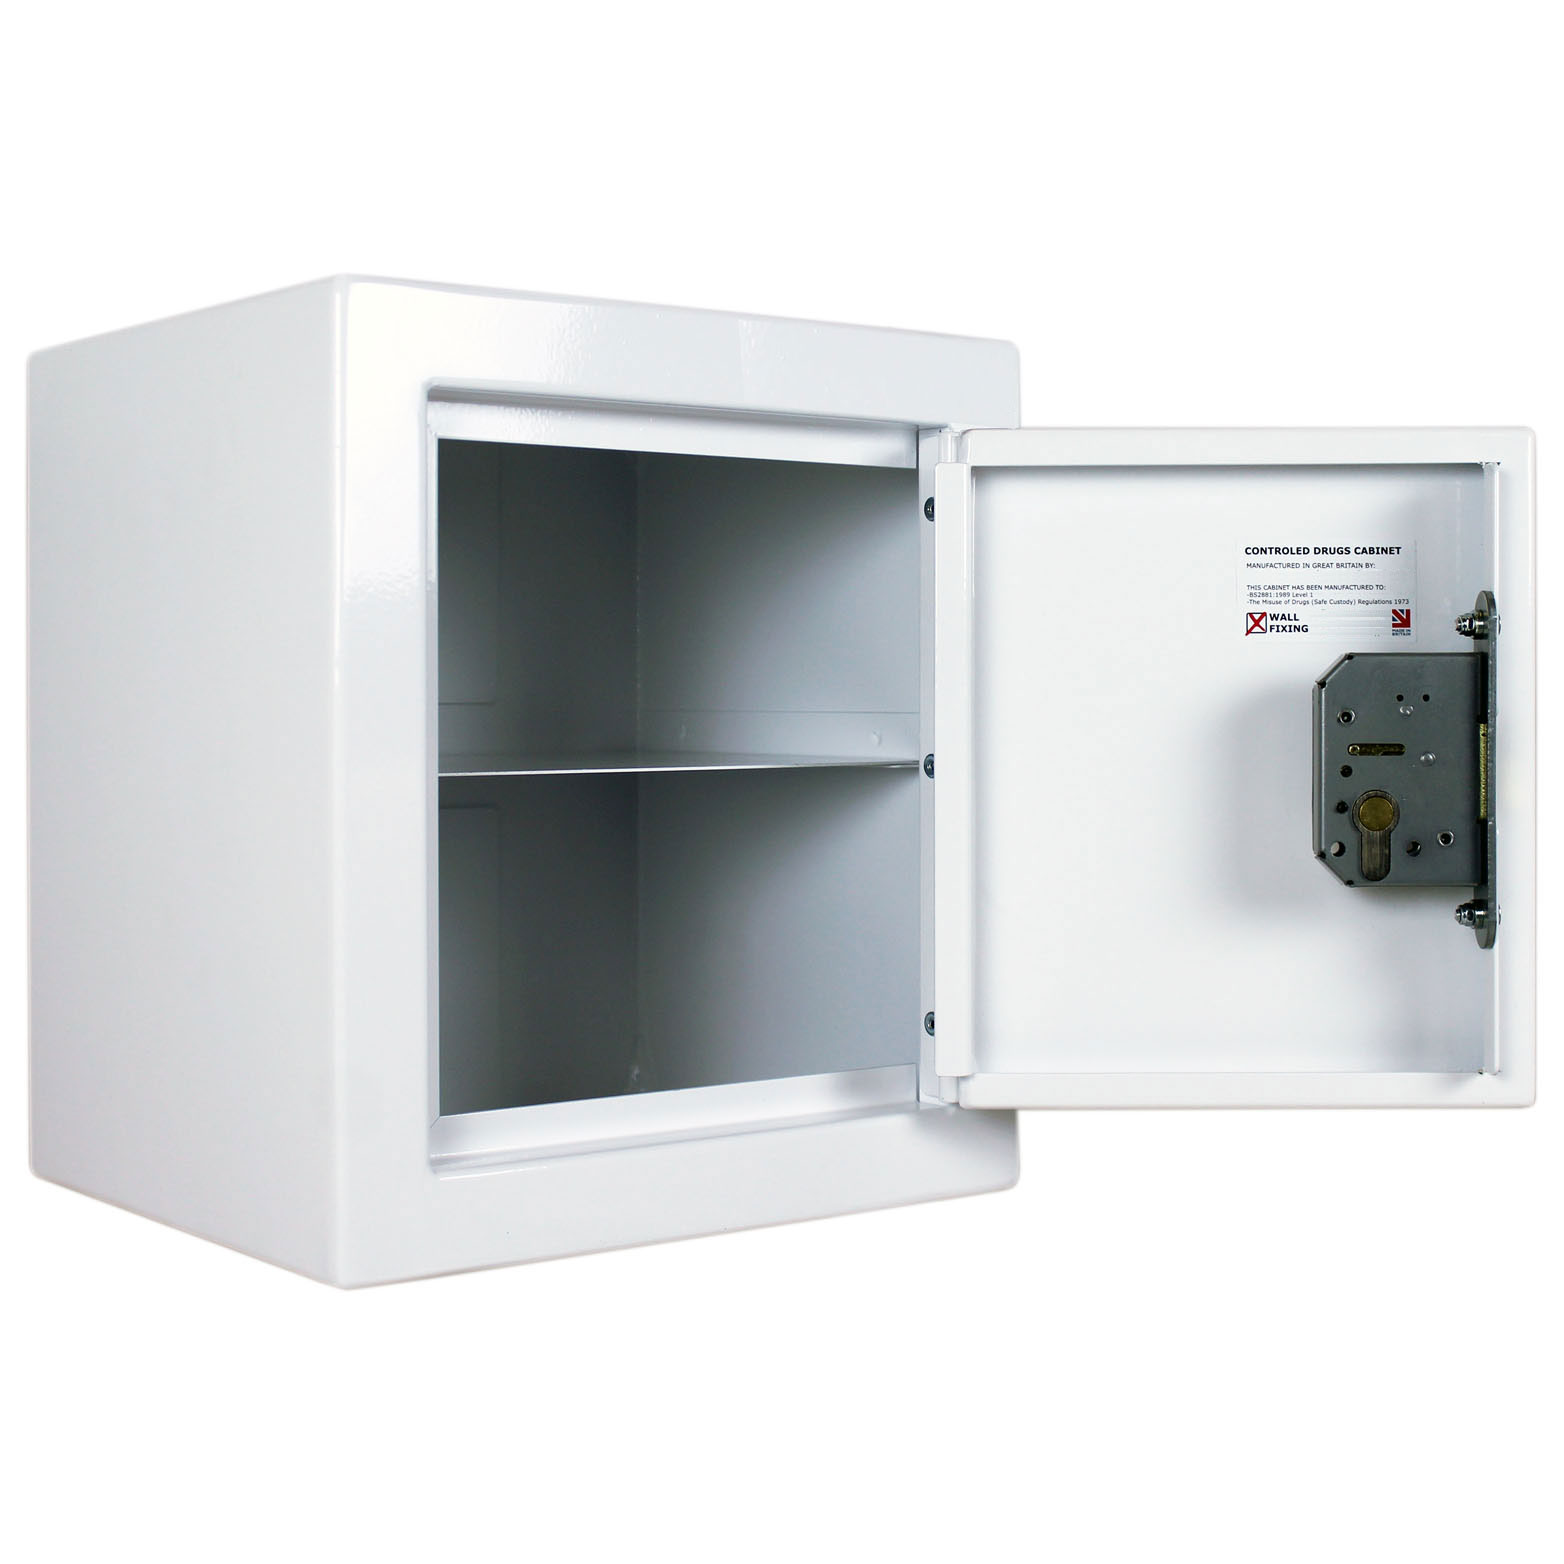 Controlled Drugs Cabinet | 27 Litre Small